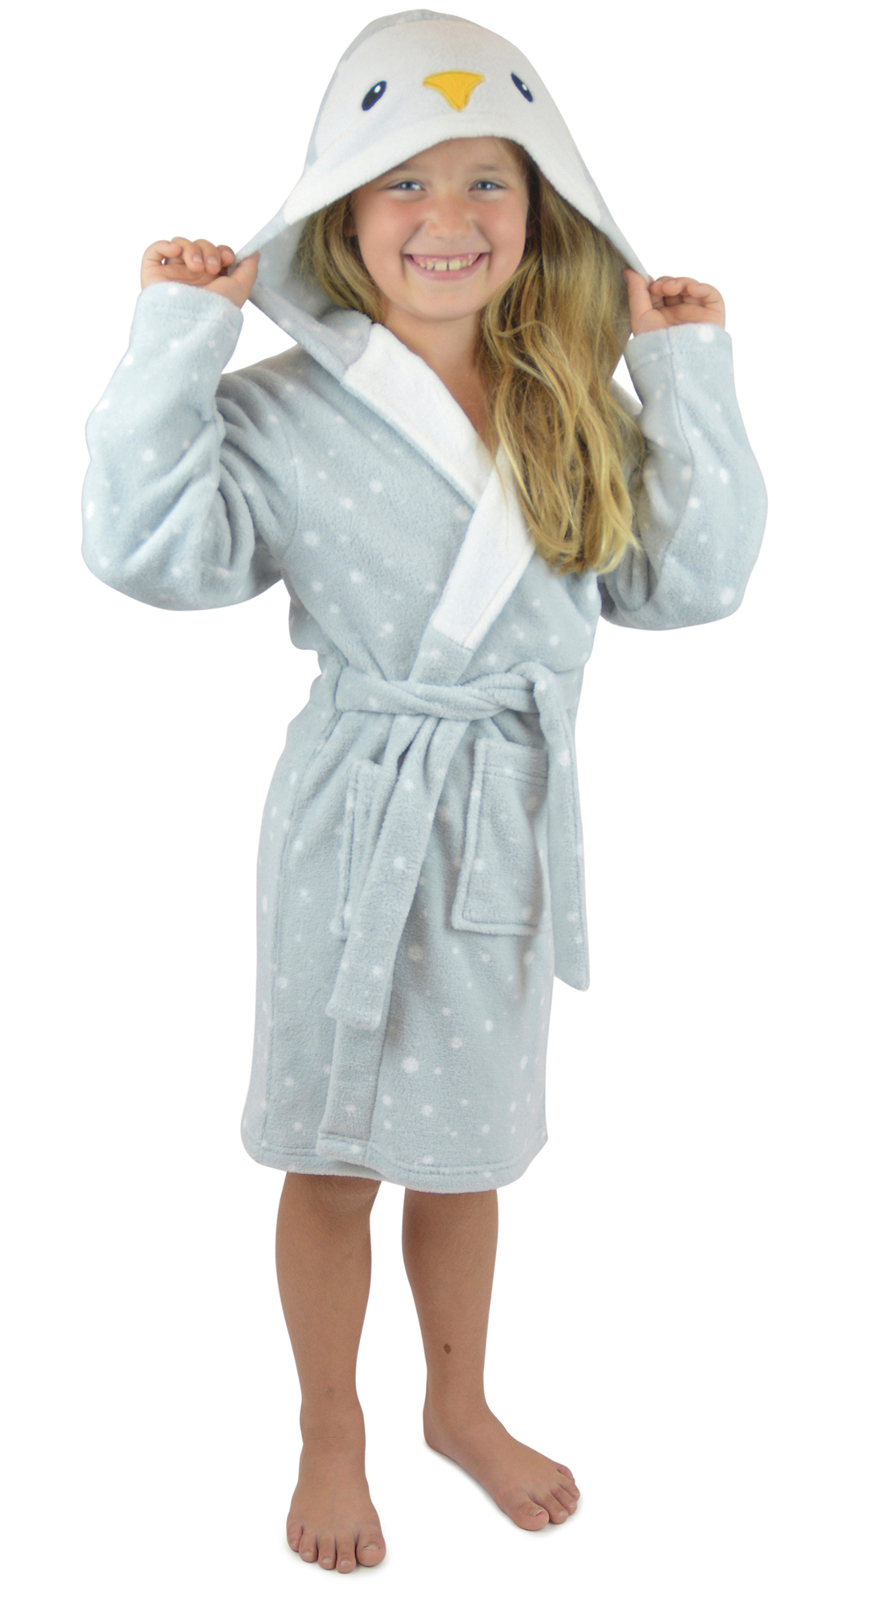 1a7735c3c5 Girls Cute Dressing Gown Soft Fleece Bath Robe Housecoat Xmas Gift Kids Size